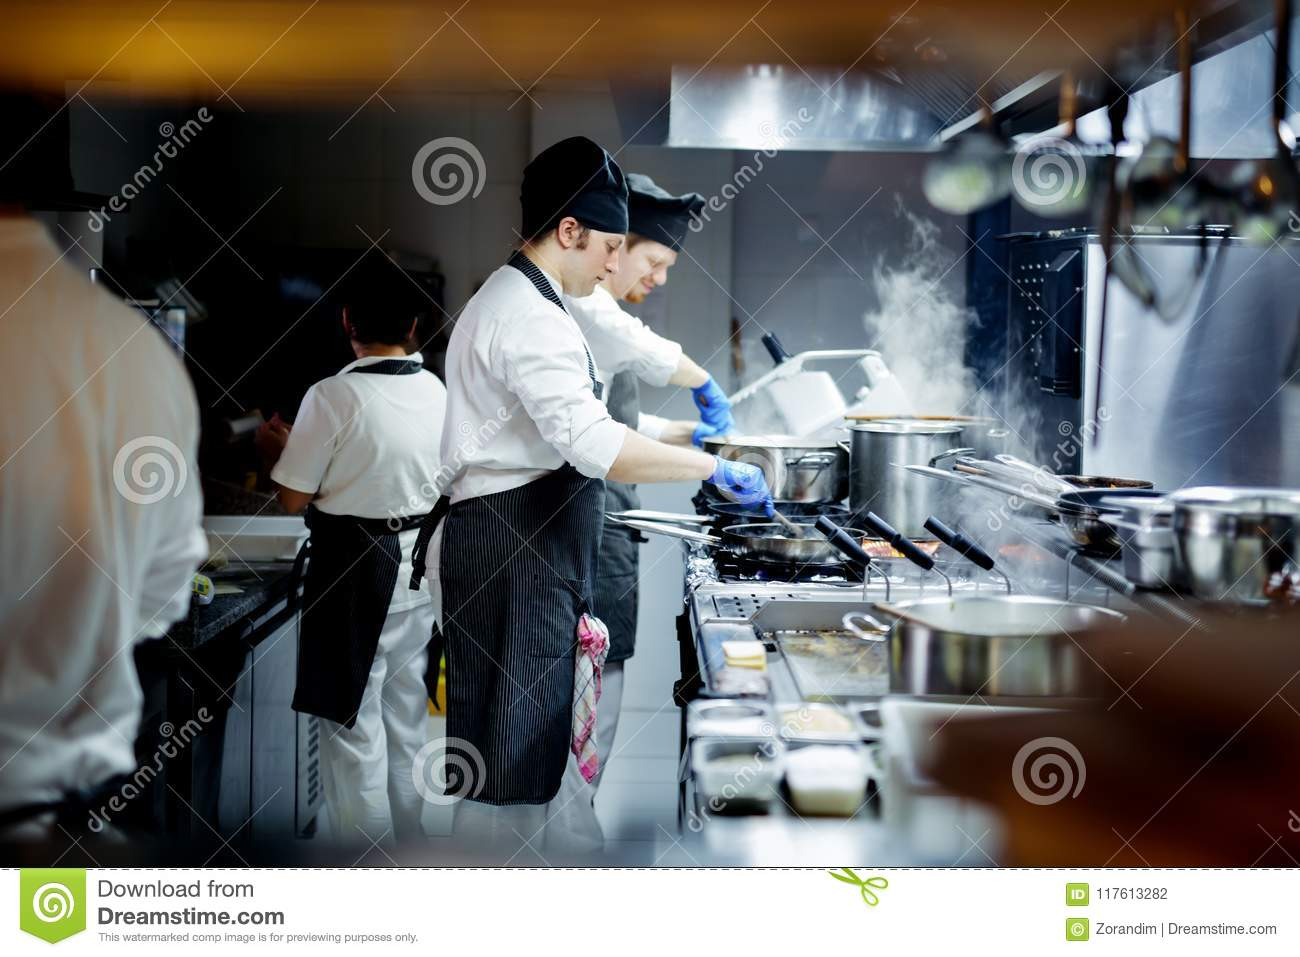 Group Of Chef Preparing Food In The Kitchen Of A Restaurant Stock Photo Image Of Metal Instrument 117613282